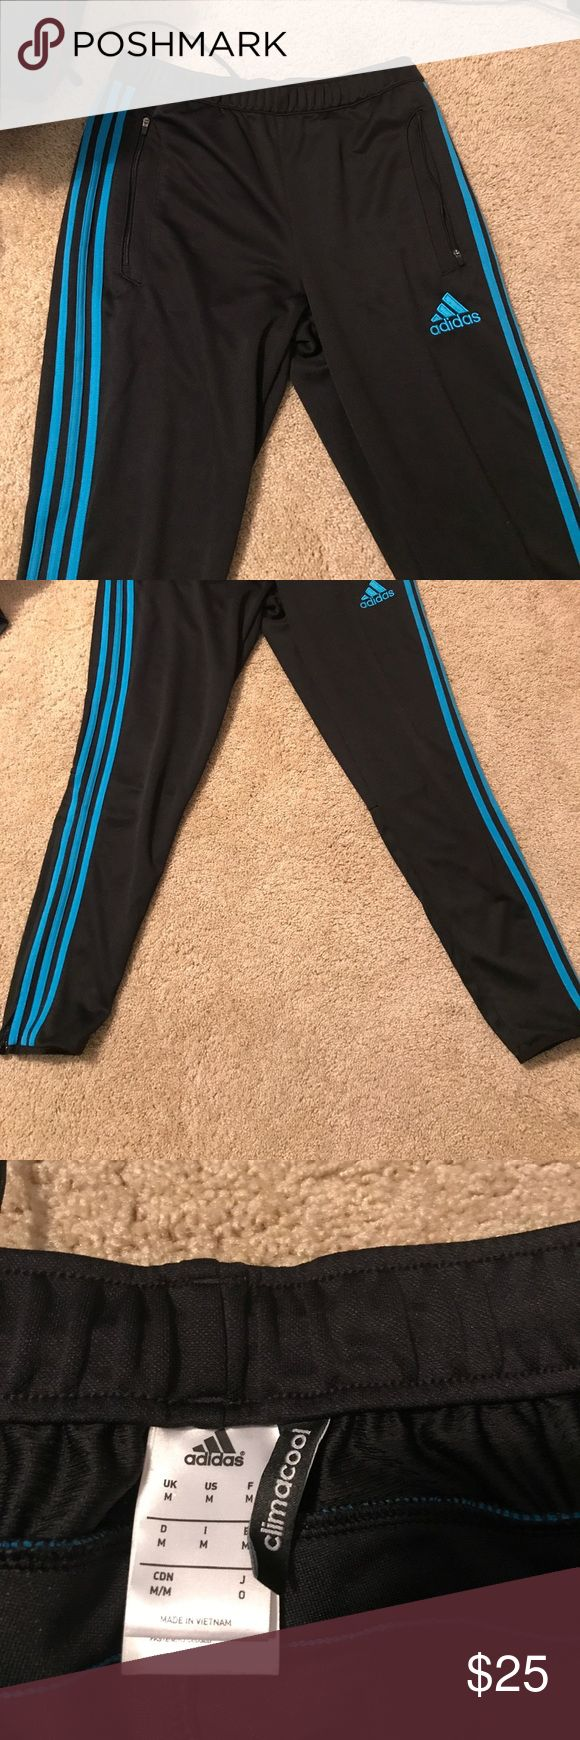 Adidas clima cool soccer/track pants Never worn adidas clima cool soccer training pants. Blue stripes and adidas logo on black pants. The pants have zippered pockets and lower ankle zippers. Perfect for the colder months, the clima cool takes away sweat from your body and keeps you cool and warm! Size is an adult medium! Adidas Pants Track Pants & Joggers